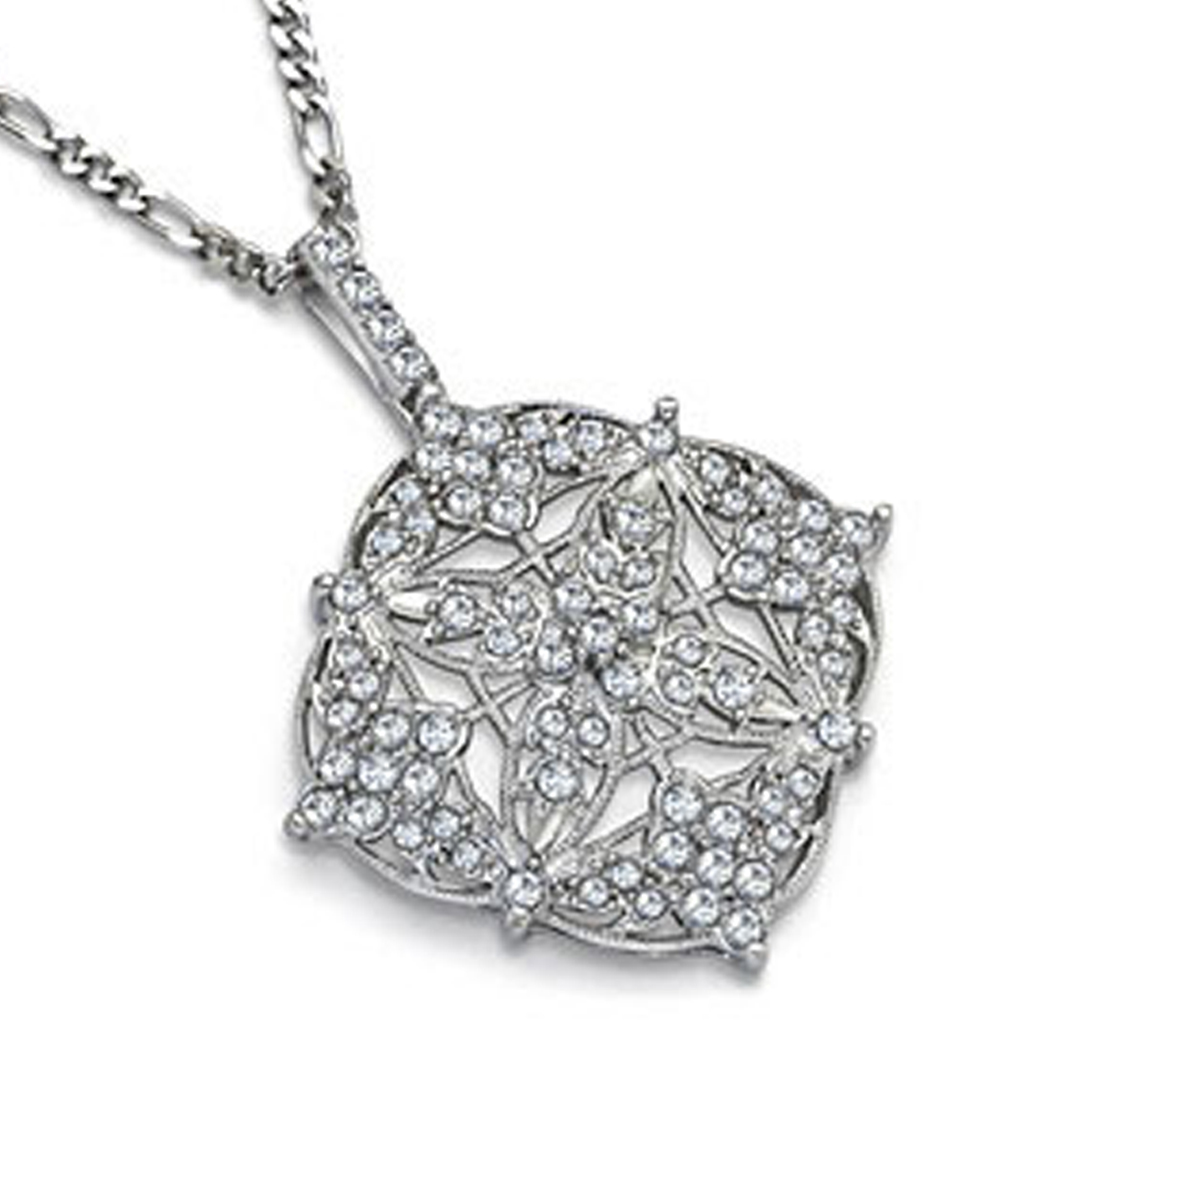 "Filigree Necklace 24"" Chain"